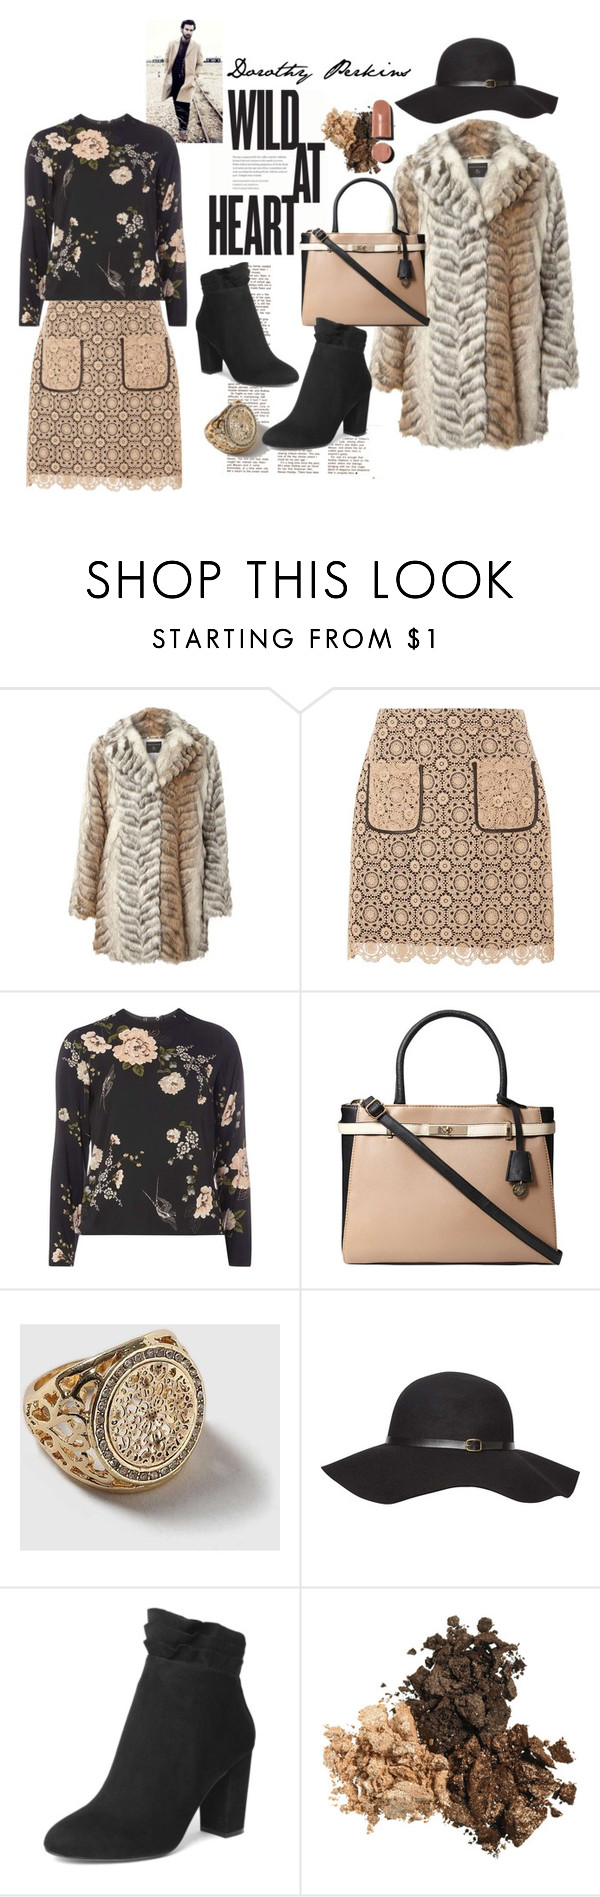 """""""Dorothy Perkins Wild At Heart"""" by lolly-p ❤ liked on Polyvore featuring Dorothy Perkins"""